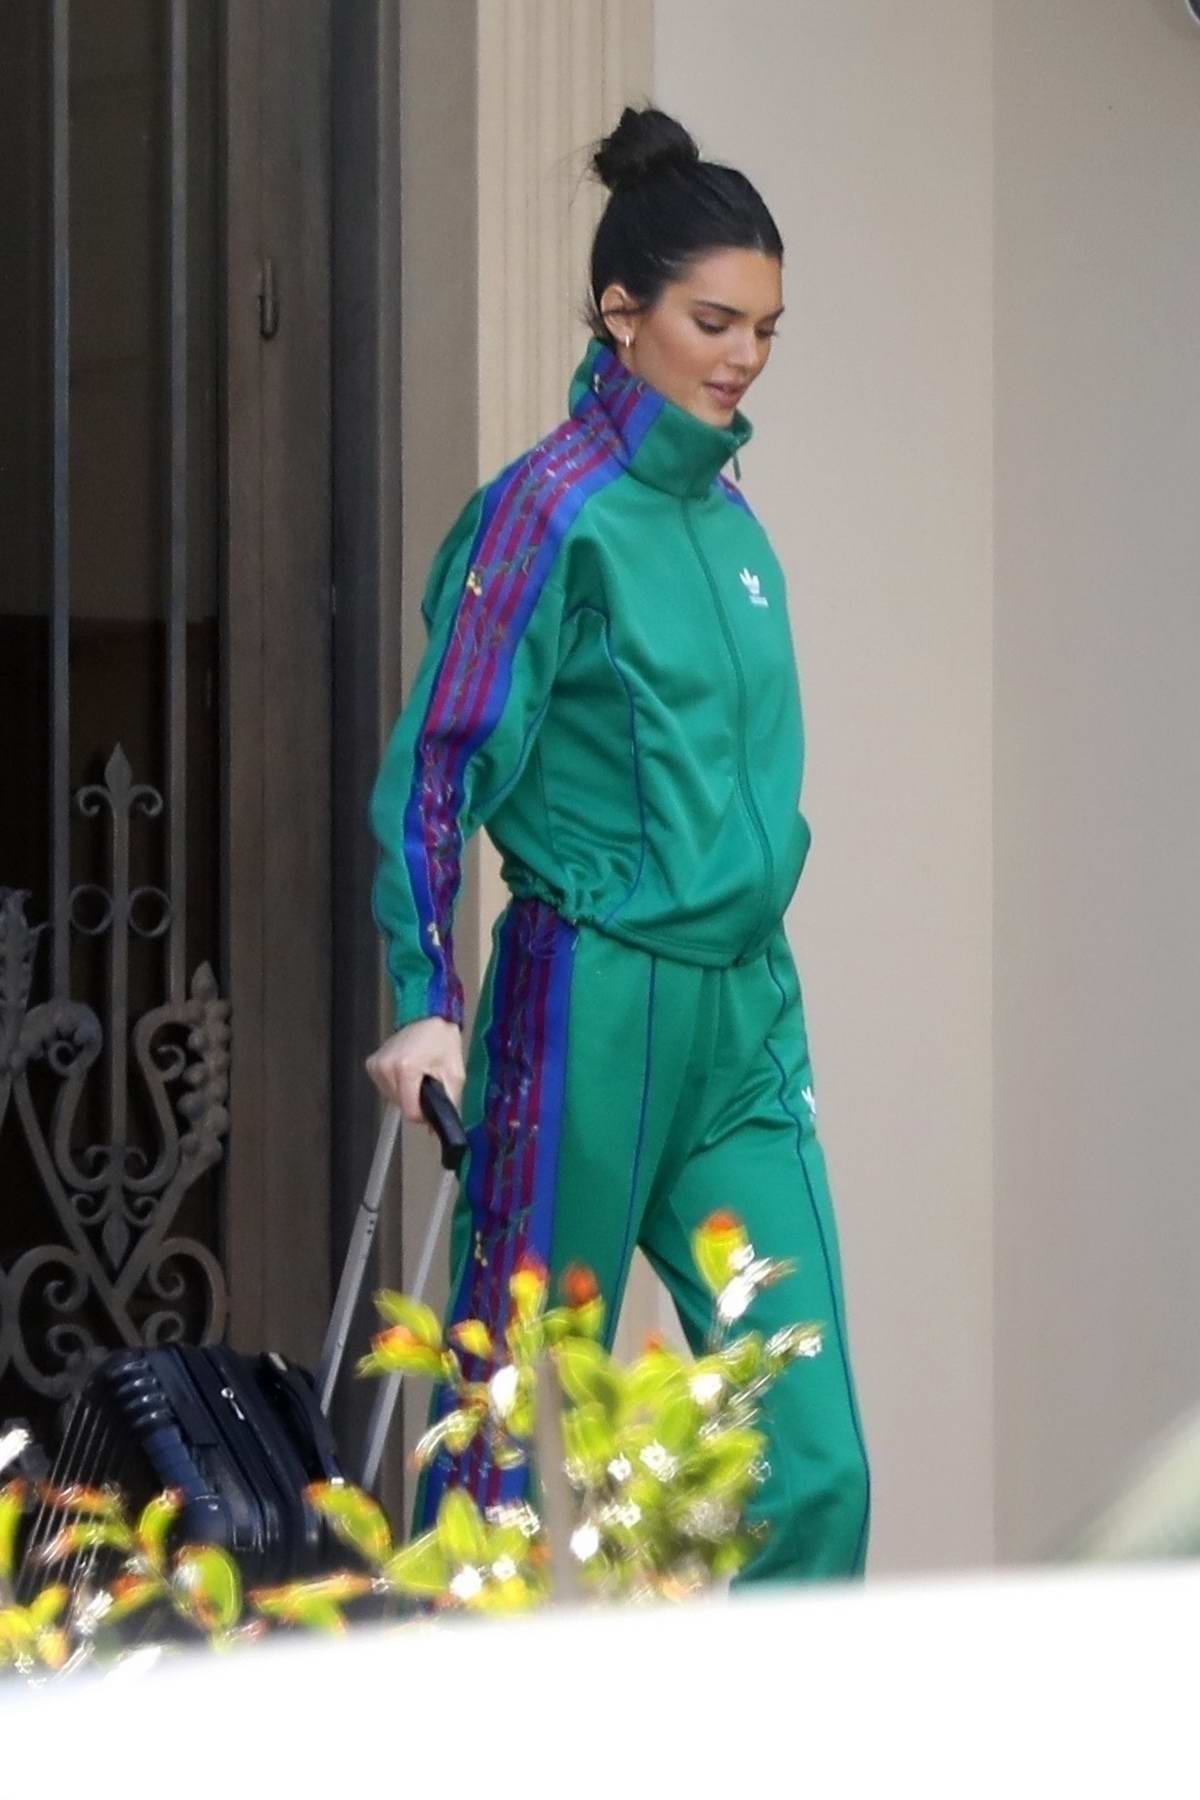 shades of new style los angeles kendall jenner spotted in a green and purple tracksuit ...